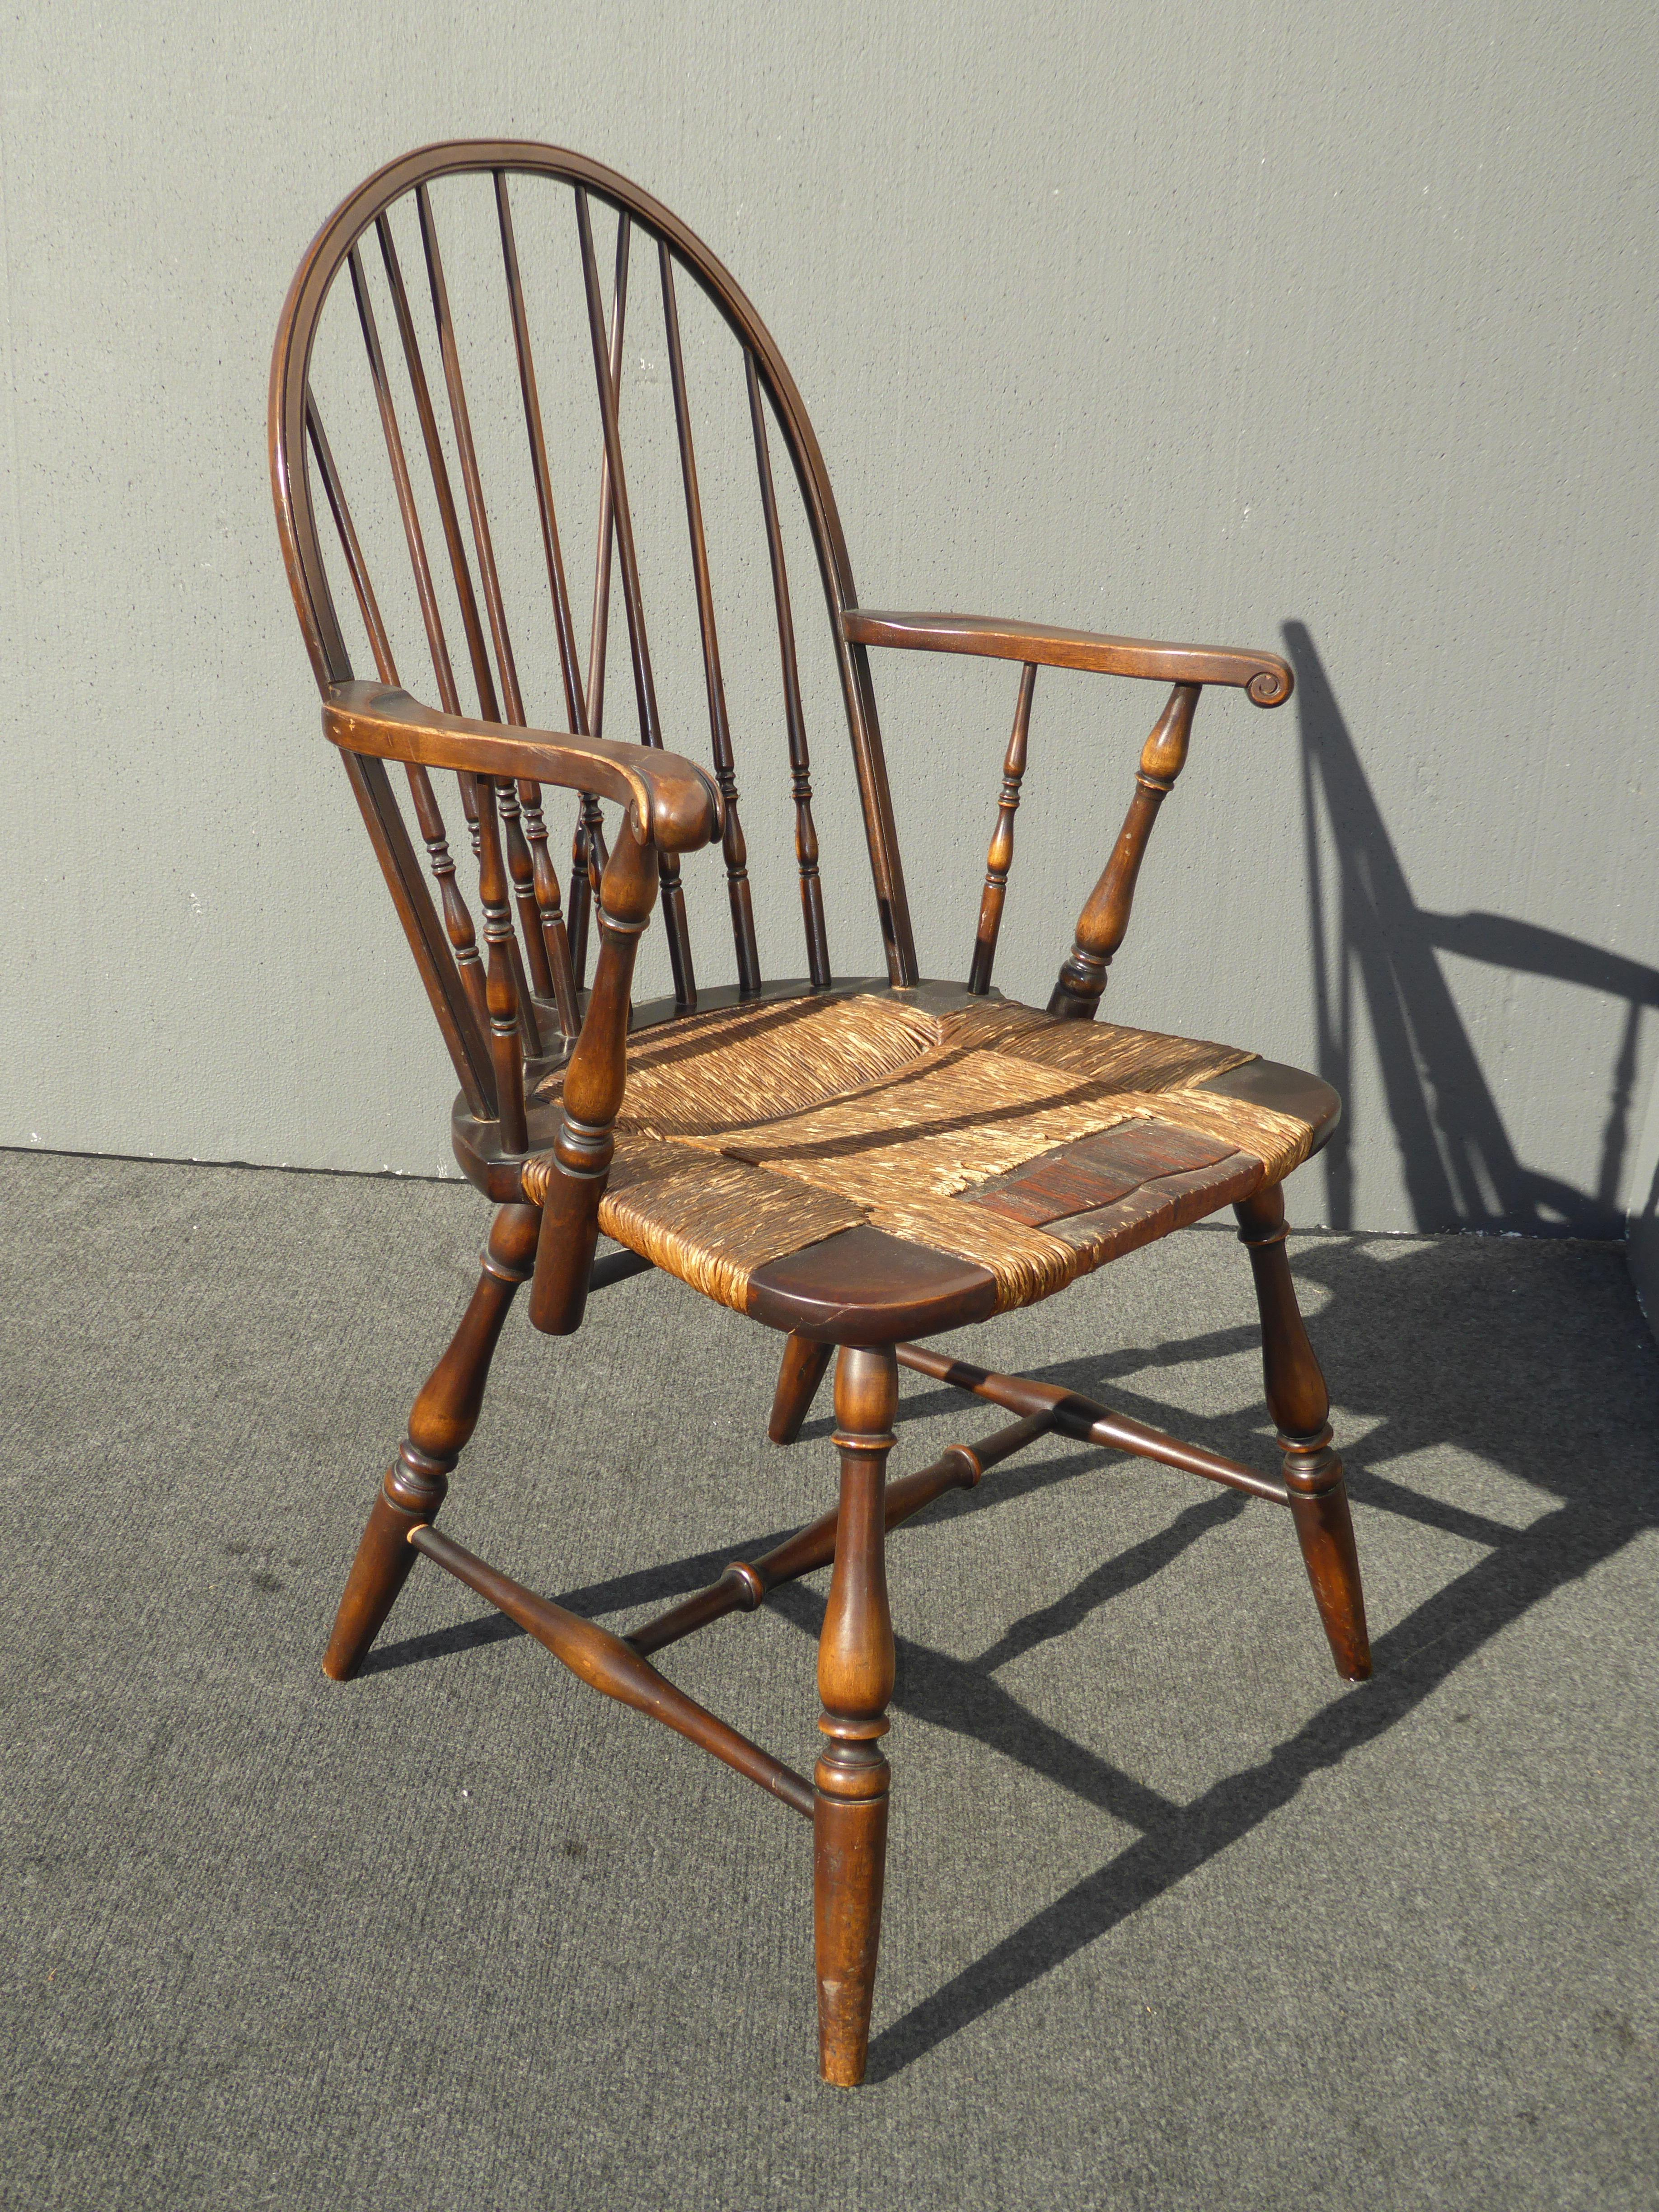 Solid Wood Rush Seat Rustic Windsor Arm Chair   Image 6 Of 11